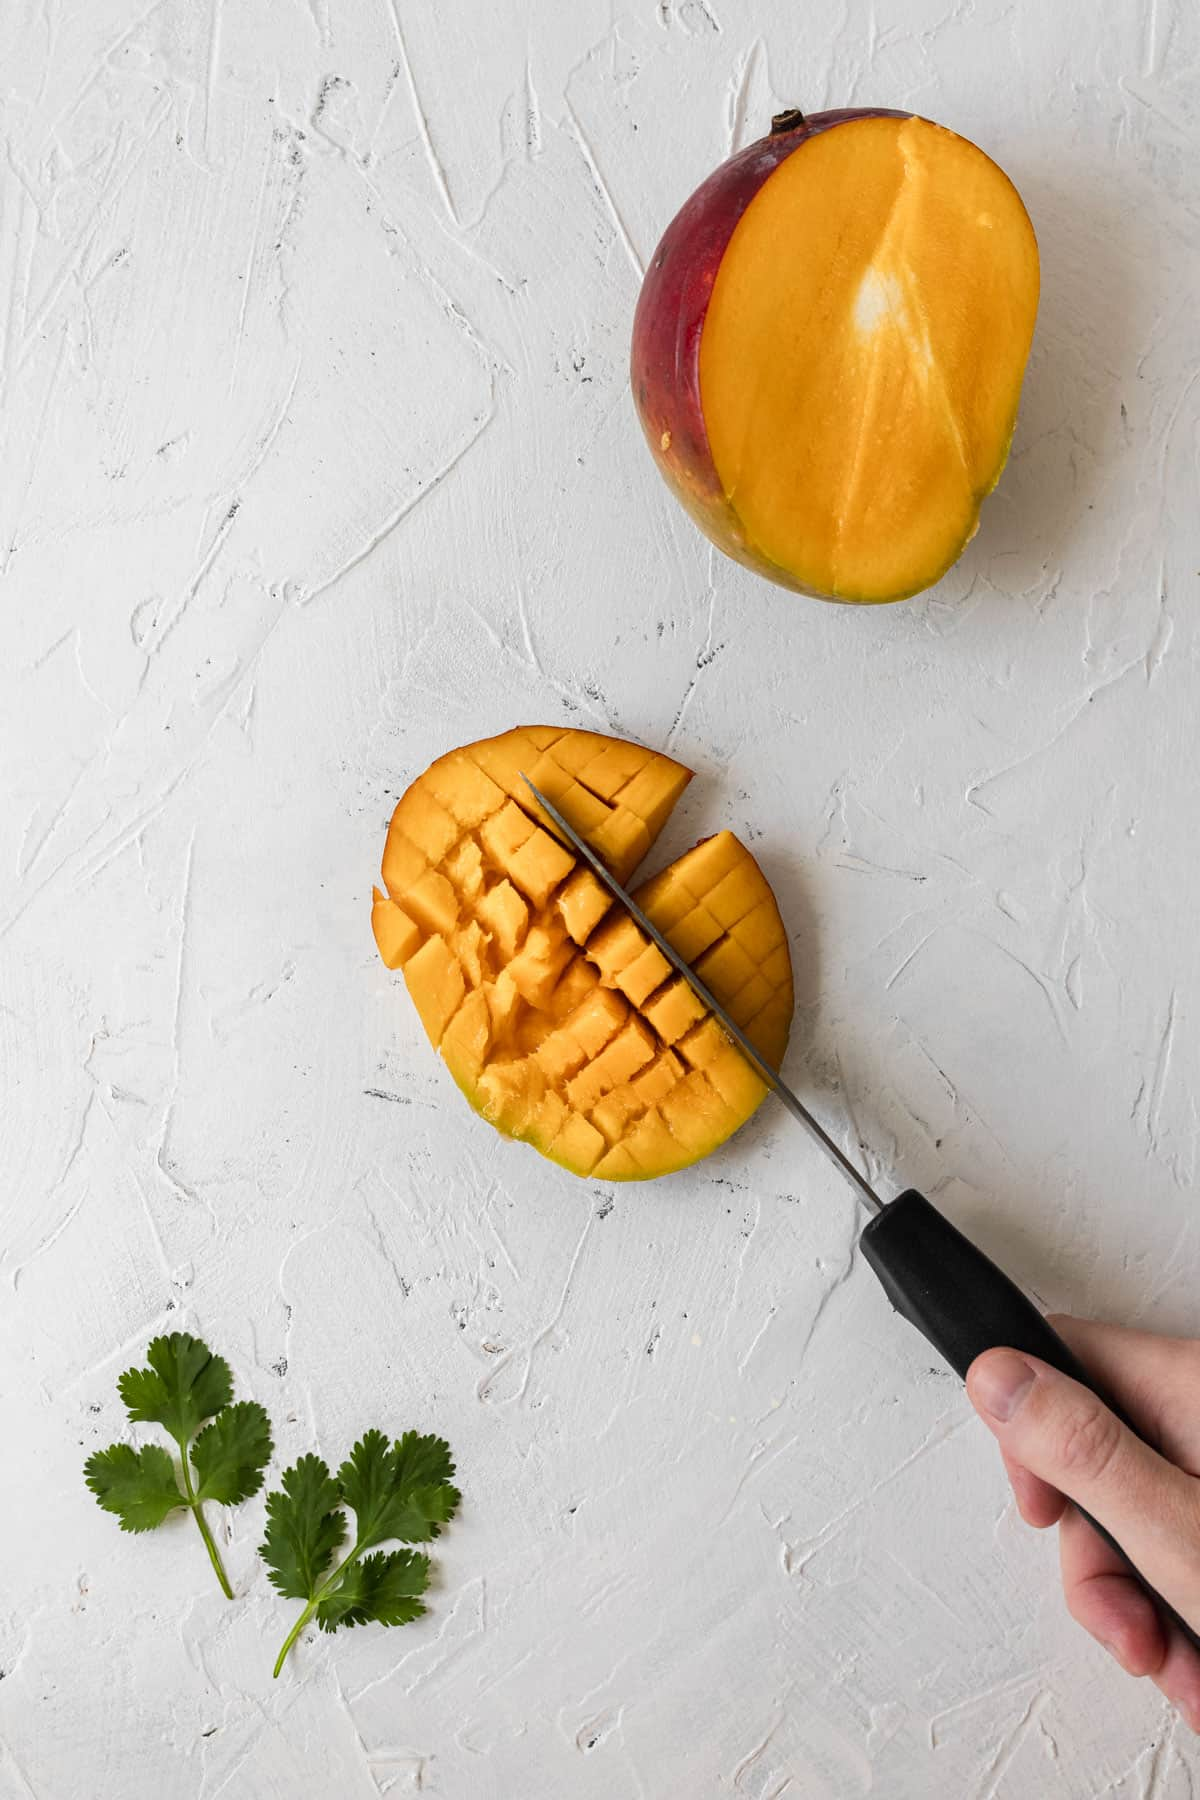 A knife cubing the inside of part of a mango.